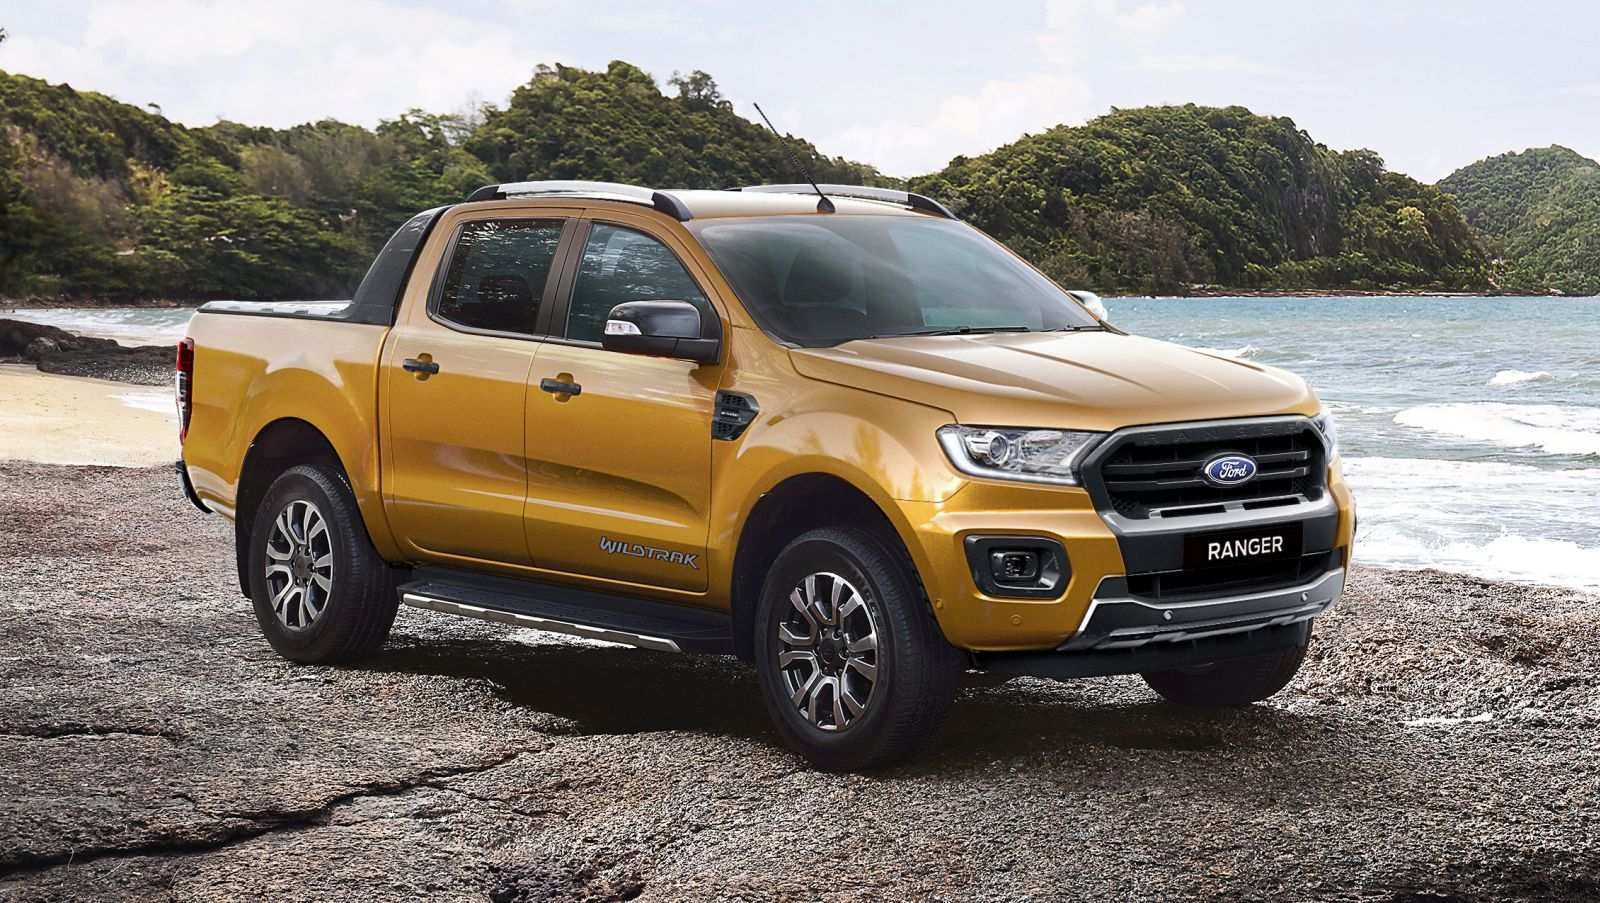 17 Great 2020 Ford Ranger Wildtrak Research New with 2020 Ford Ranger Wildtrak